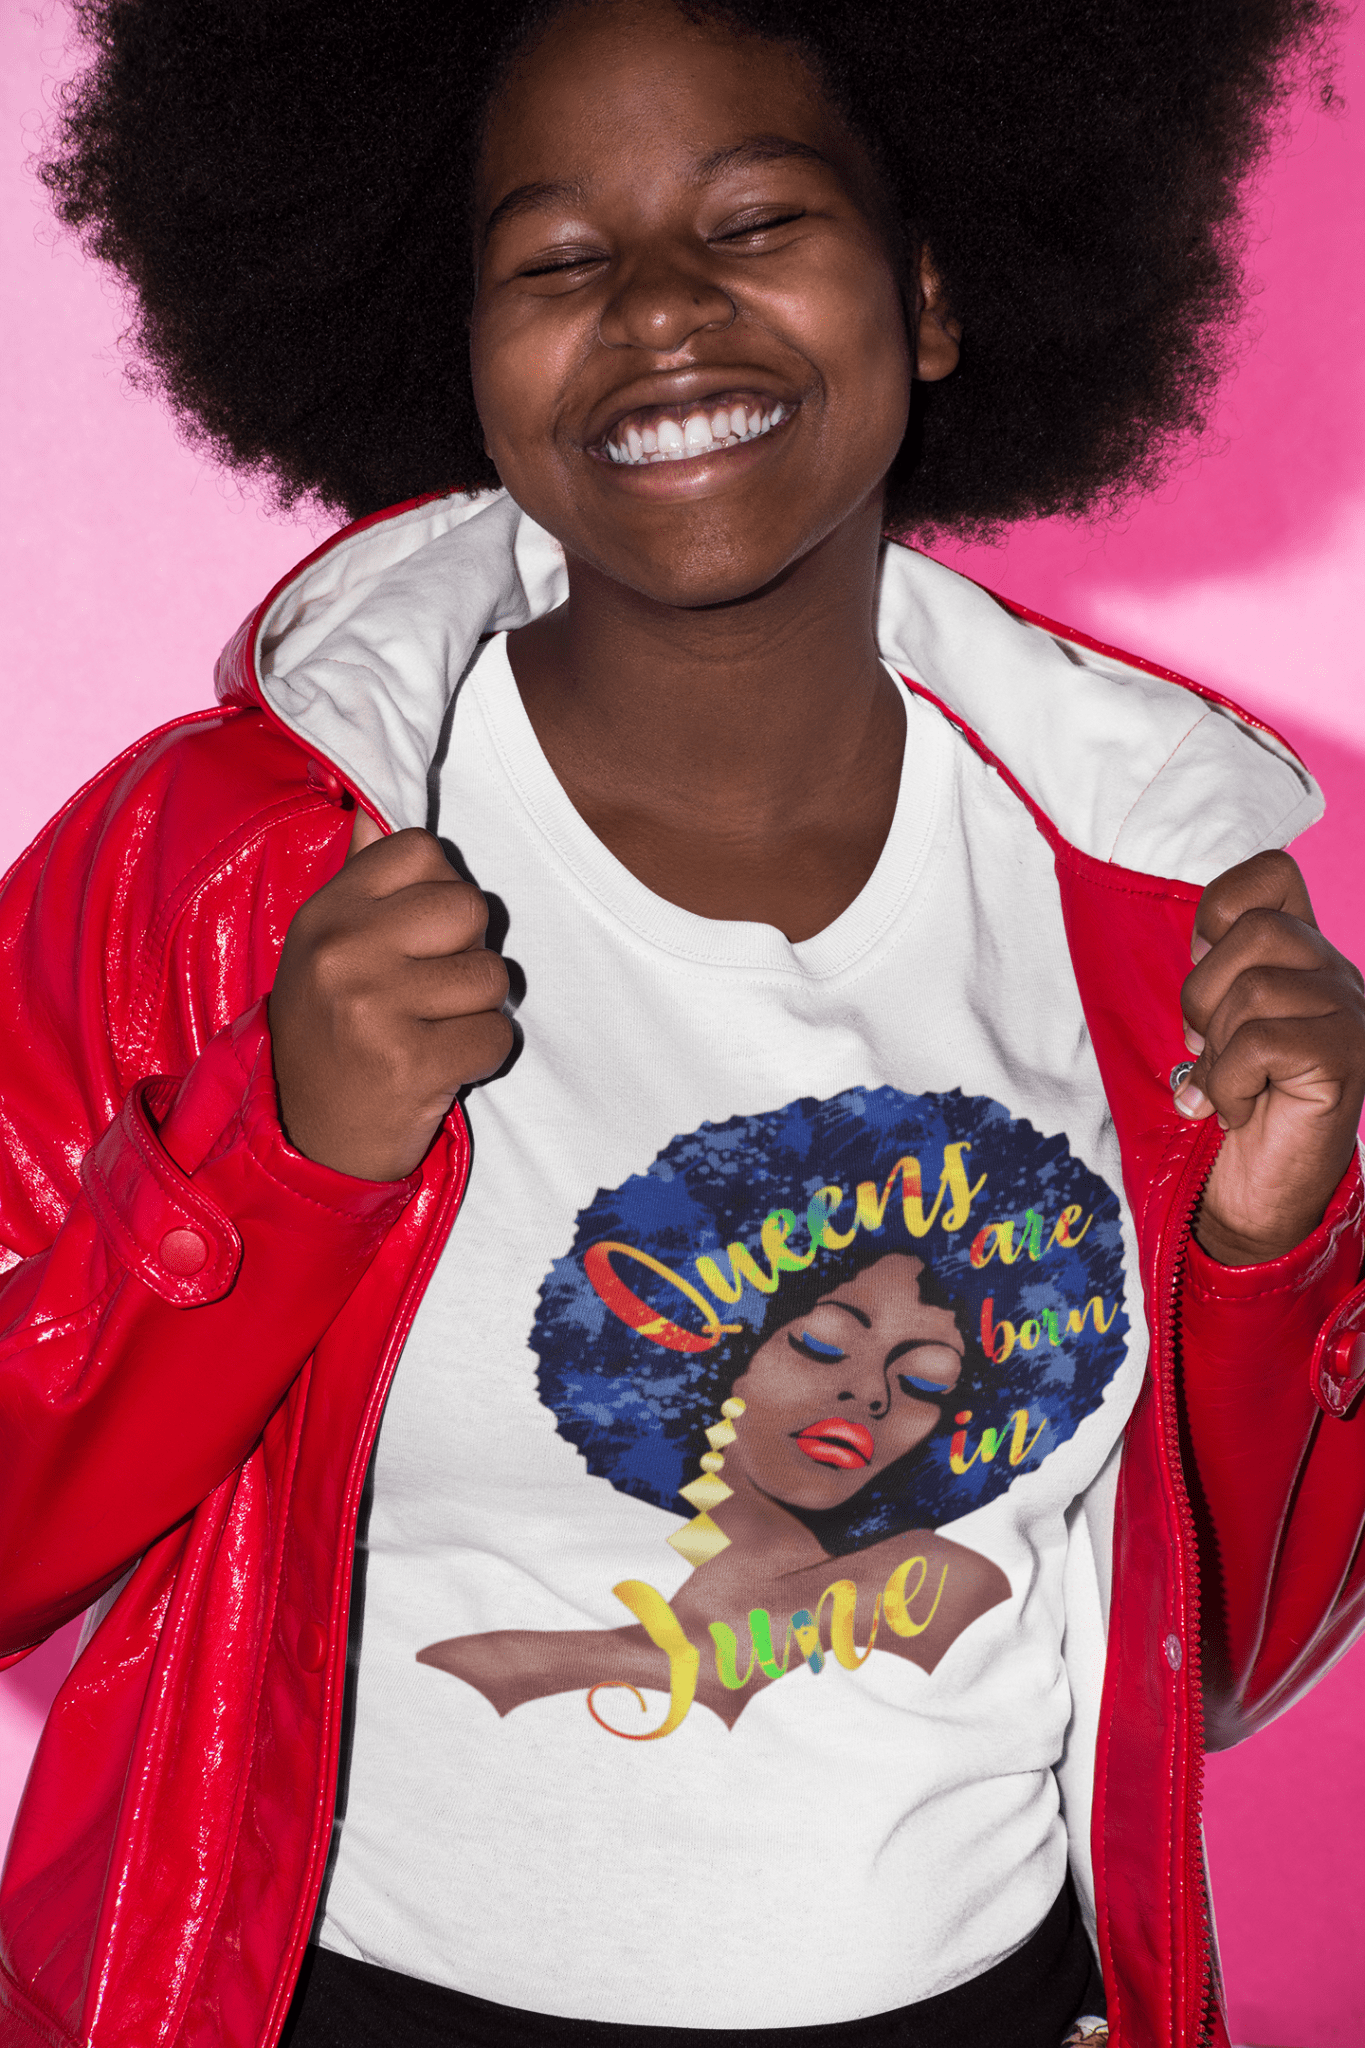 t-shirt-mockup-featuring-a-smiling-woman-with-afro-hair-wearing-a-red-raincoat-21710